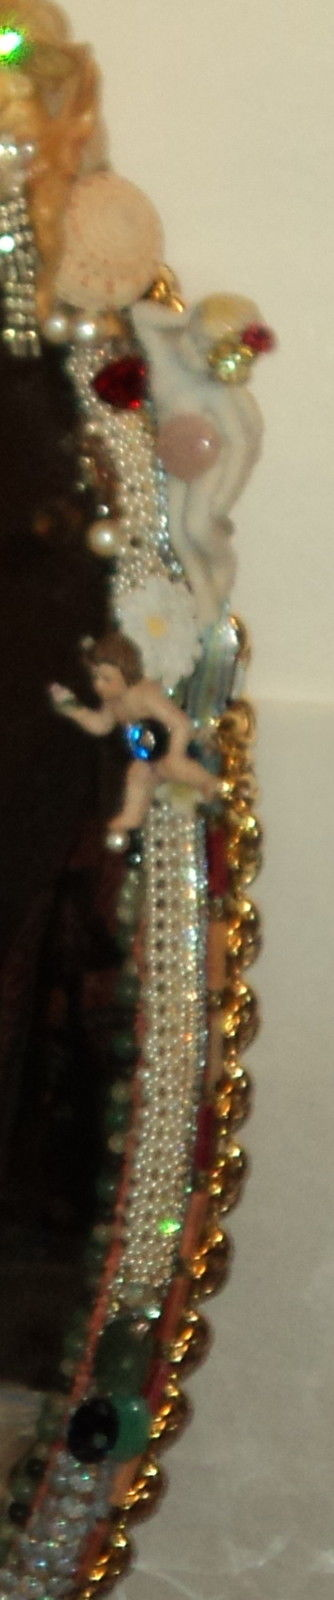 """3' 4"""" tall oval Magical Jeweled Mirror, insanely encrusted with cherubs, angels, jewels, pearls, and more by fashion jewelry designer Wendy Gell. Detail shot #5"""